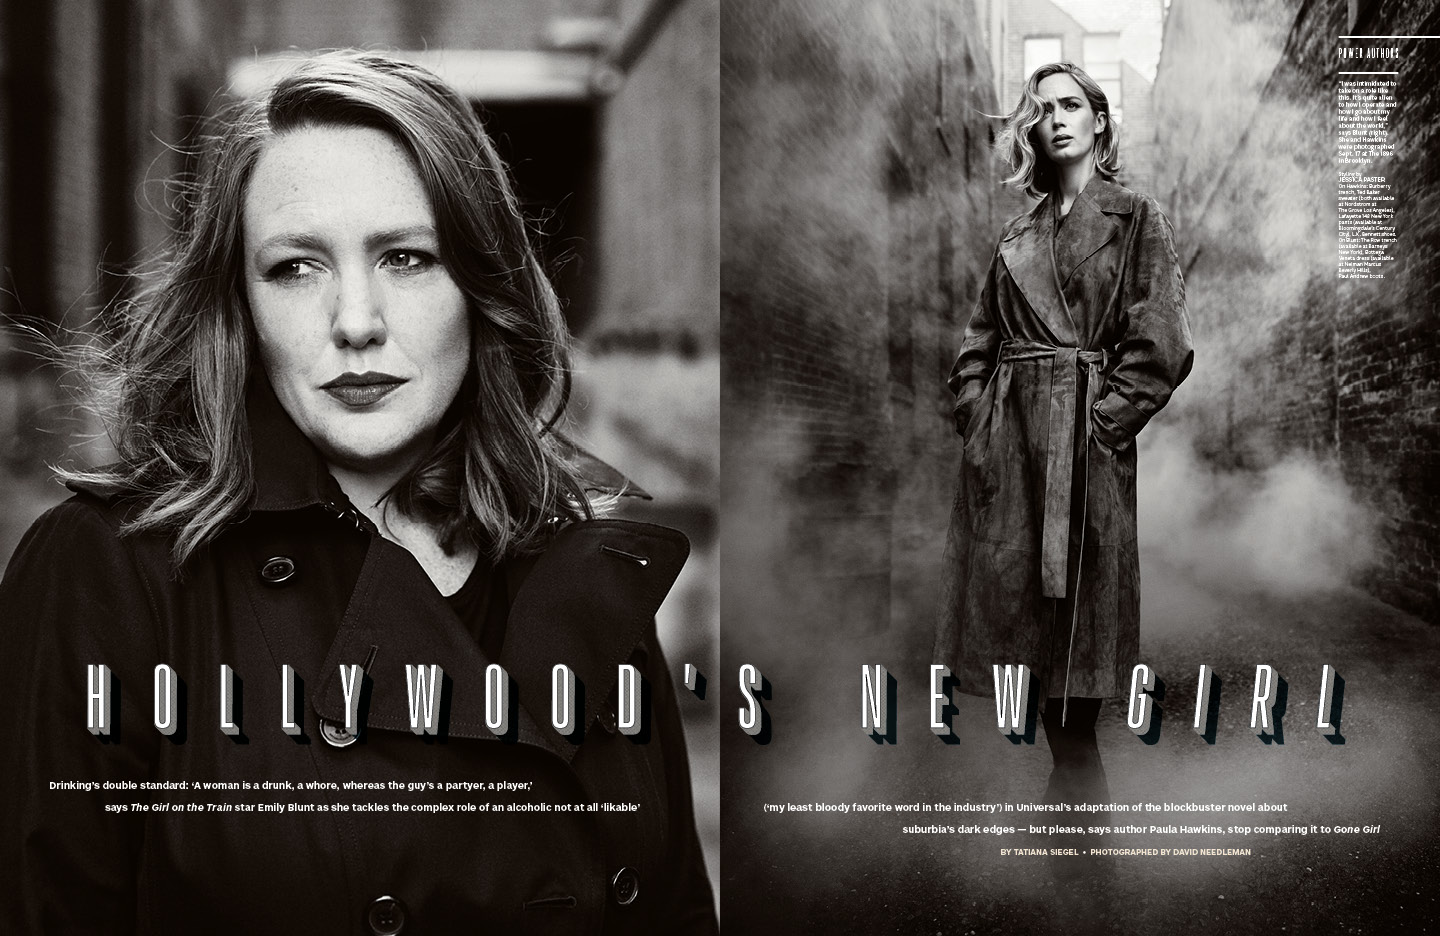 Hollywood's New Girl / The Hollywood Reporter / 10.14.16 / kelsey stefanson / art direction + graphic design / yeskelsey.com